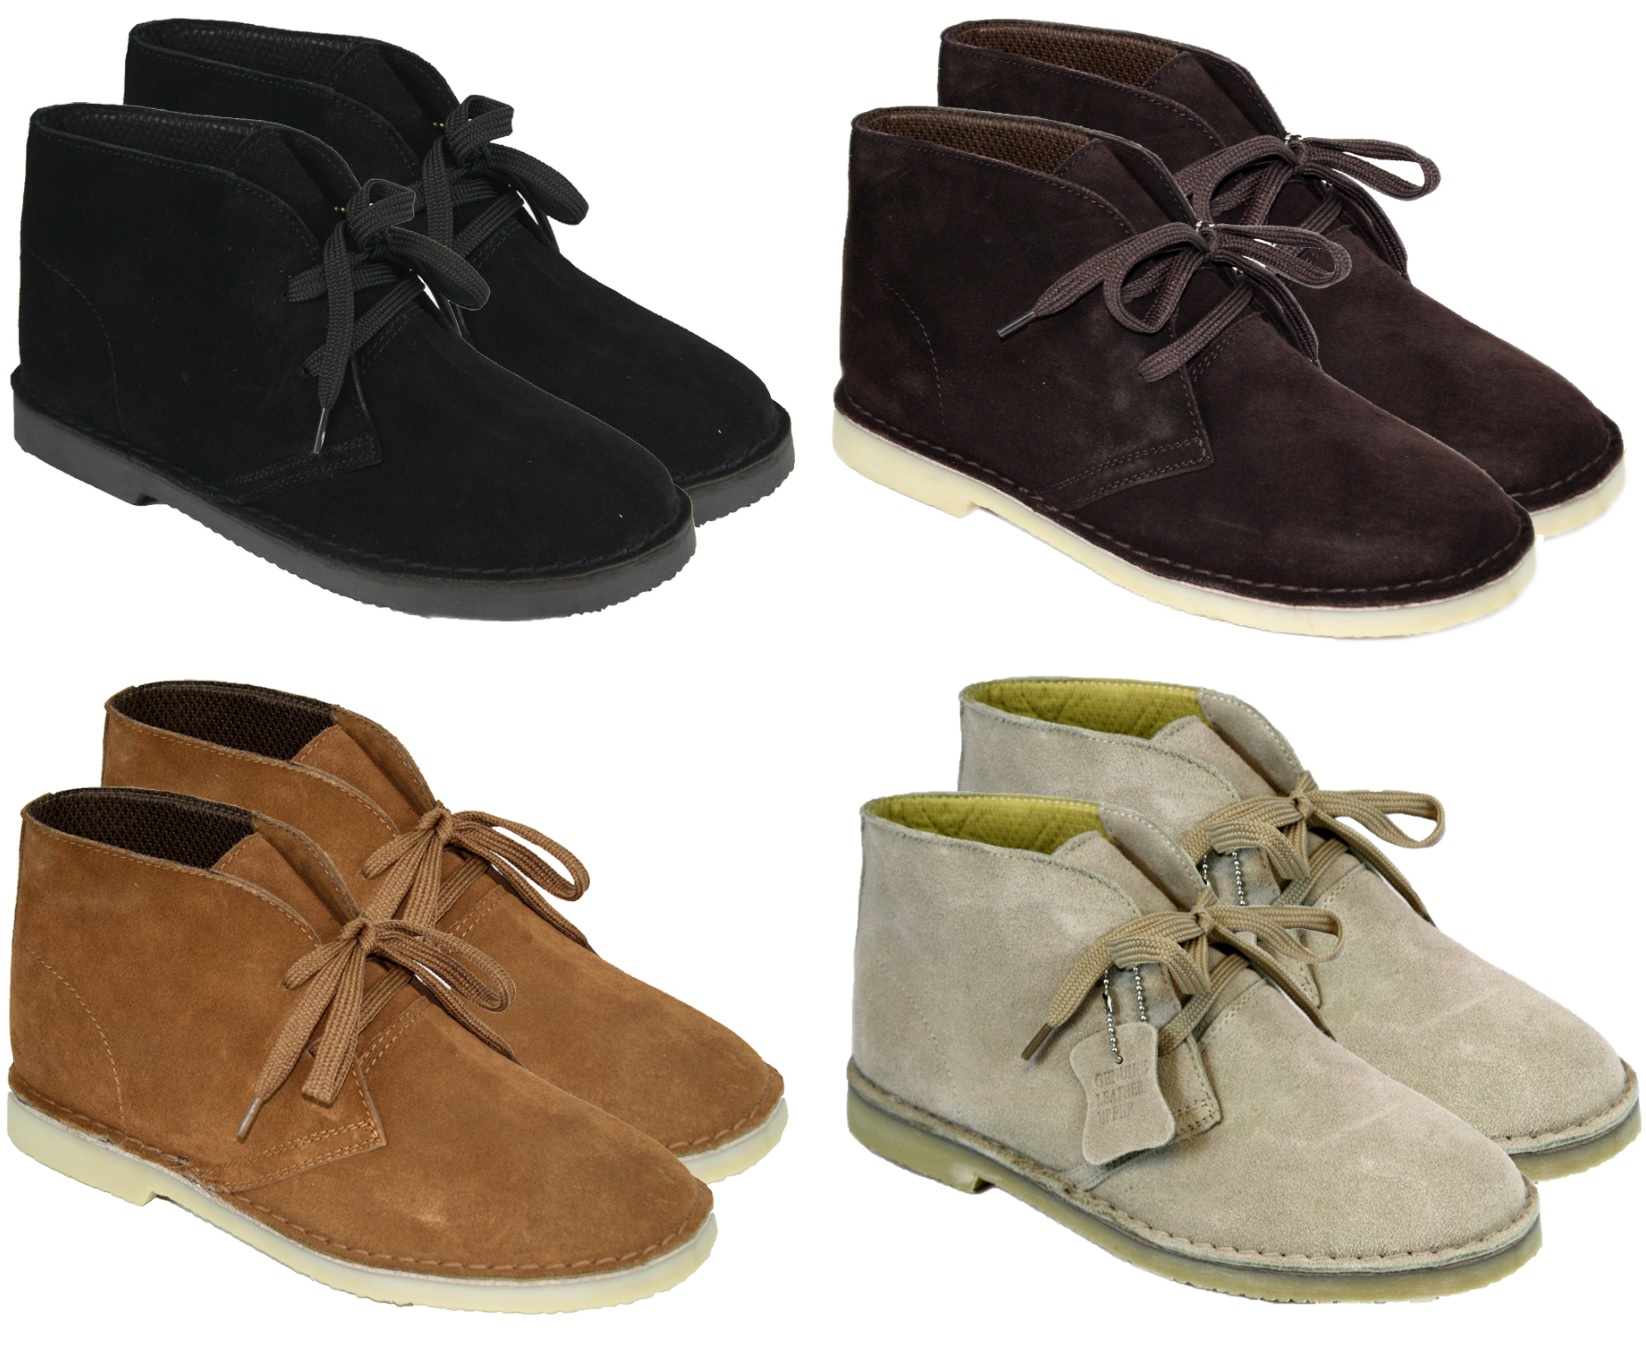 mens hi top desert boots suede leather lace up ankle